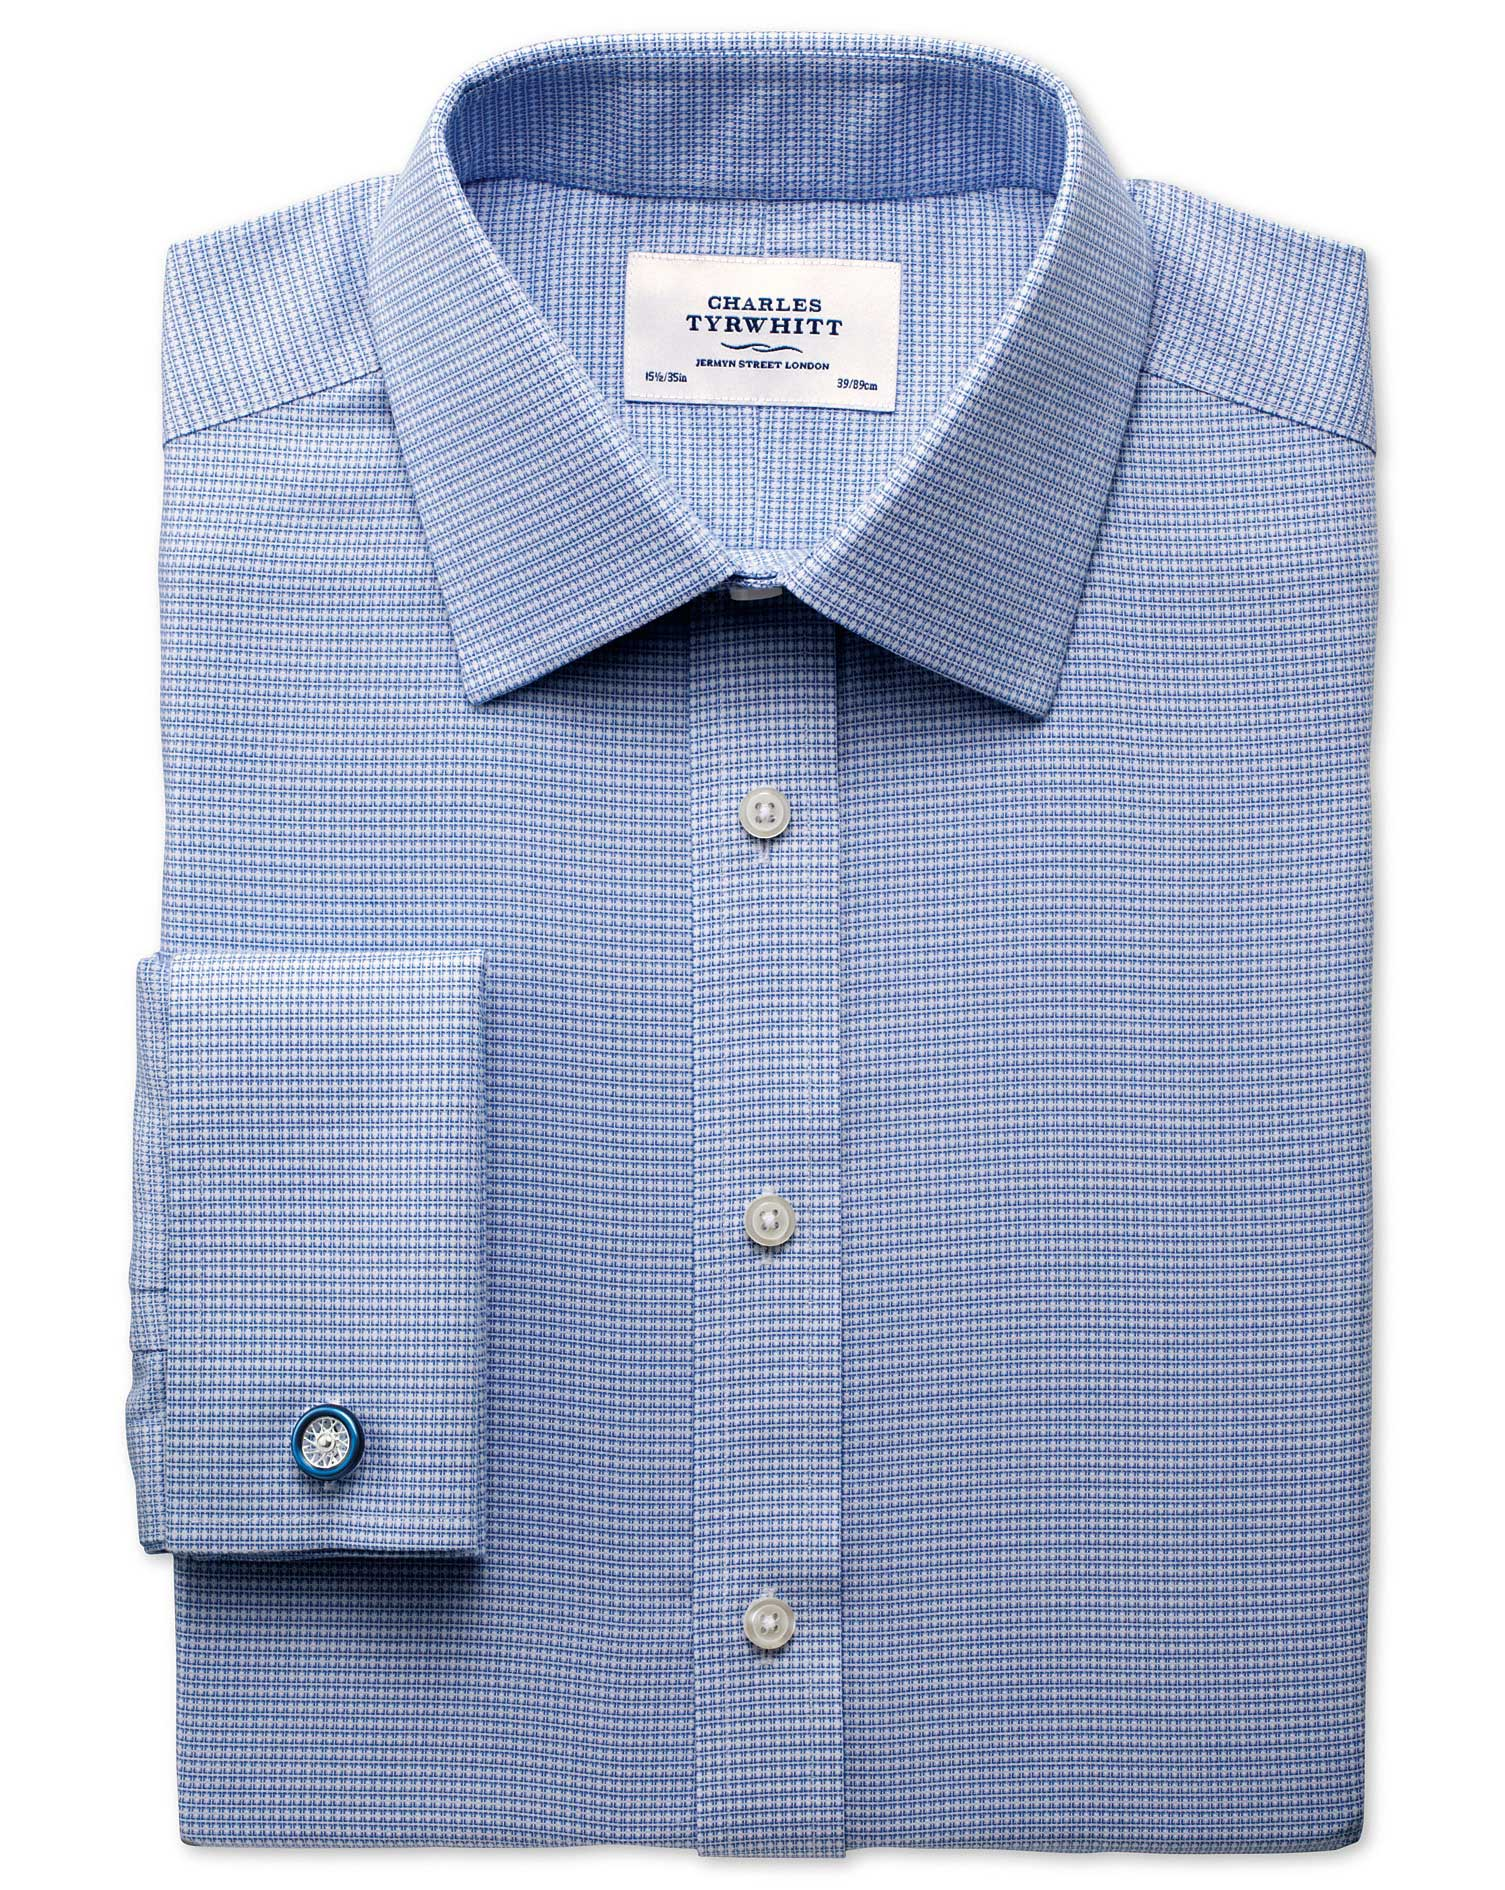 Classic Fit Non-Iron Square Textured Mid Blue Cotton Formal Shirt Double Cuff Size 15/35 by Charles